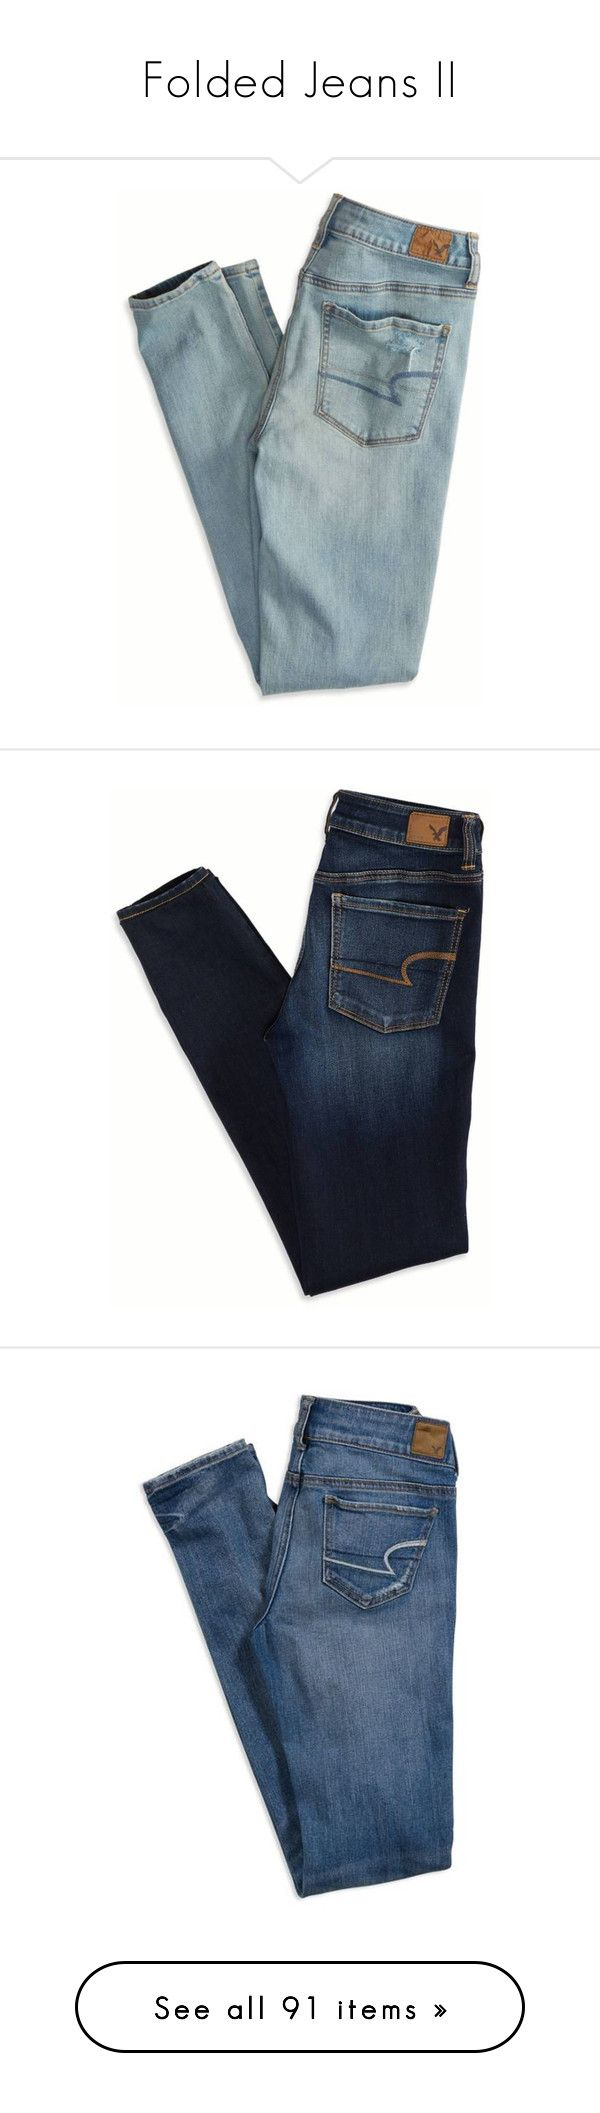 """Folded Jeans II"" by bitbyacullen ❤ liked on Polyvore featuring jeans, pants, bottoms, trousers, american eagle outfitters, folded, pantalones, blue jeans, american eagle outfitters jeans and blue skinny jeans"